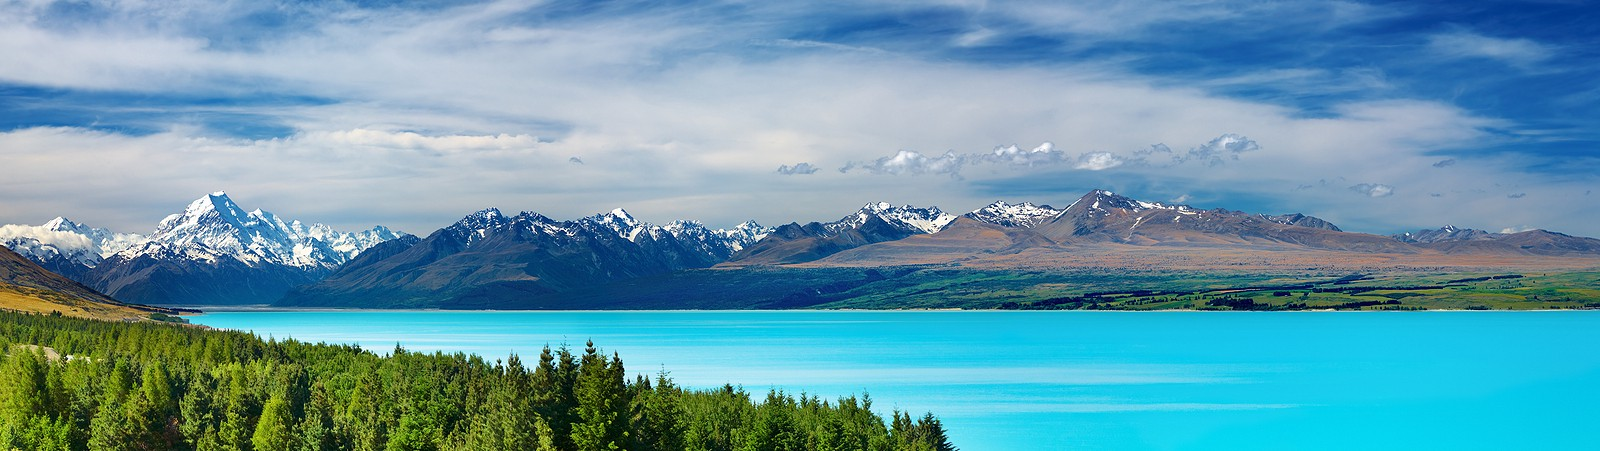 Landscape of Aoraki Mt Cook and ranges in the distance, bright ice blue Pukaki Lake in centre and pine trees in foreground.